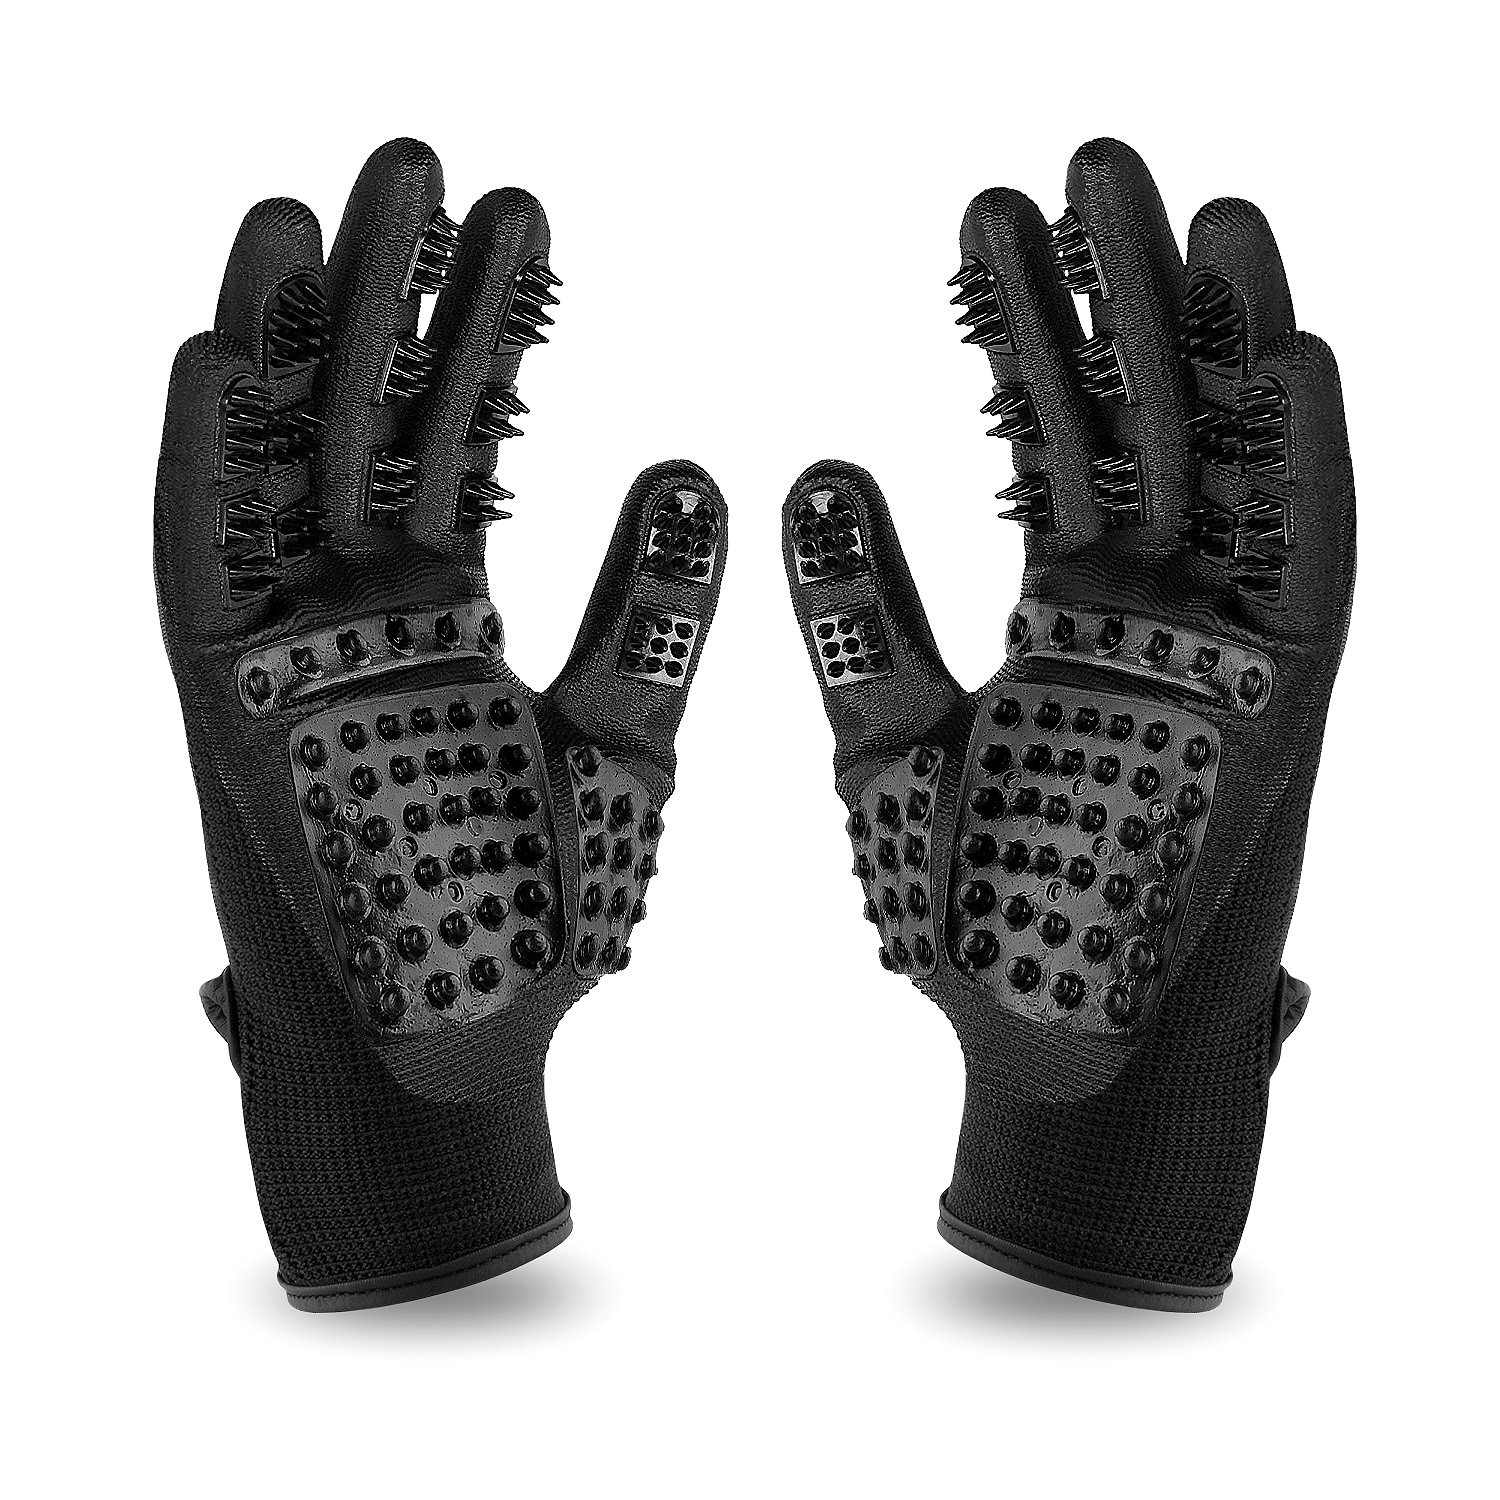 CASFANSTA Pet Grooming Glove, Gentle Pet Deshedding Glove for Dogs, Cats, Horses Effective Pet Hair Remover Brush Massage Gloves -1 Pair